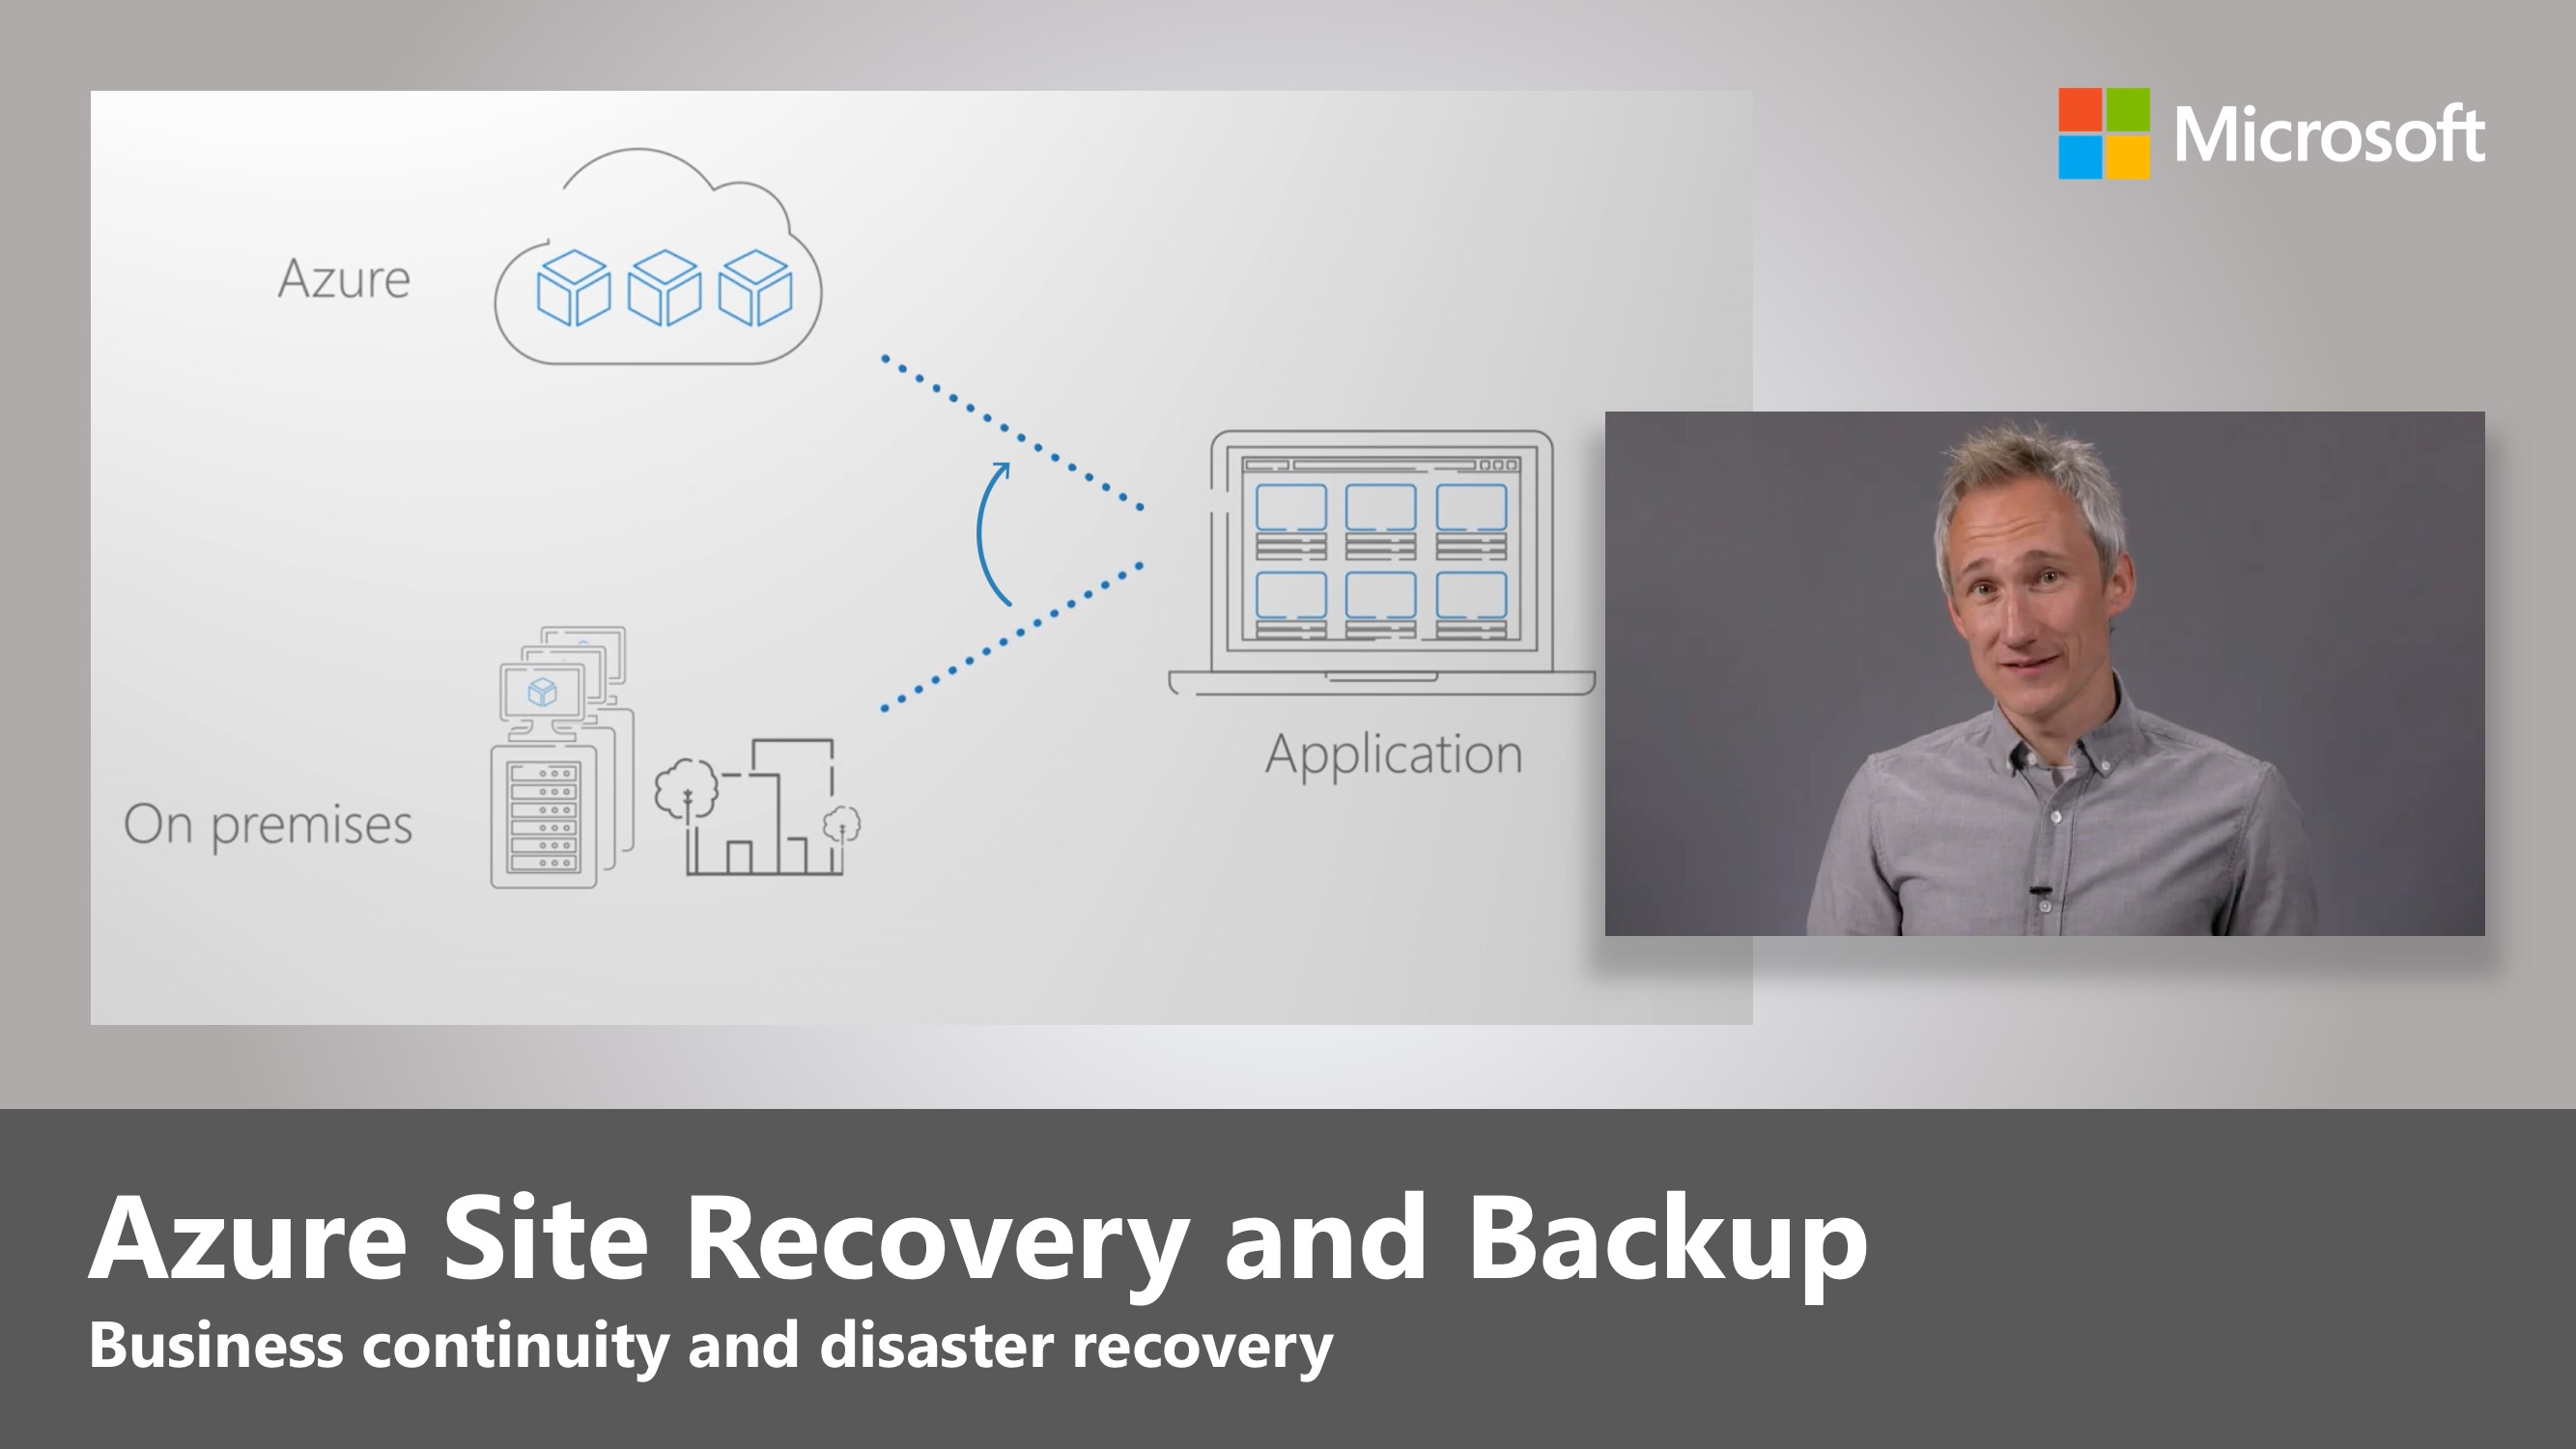 Artwork for An overview of business continuity and disaster recovery with Microsoft Azure